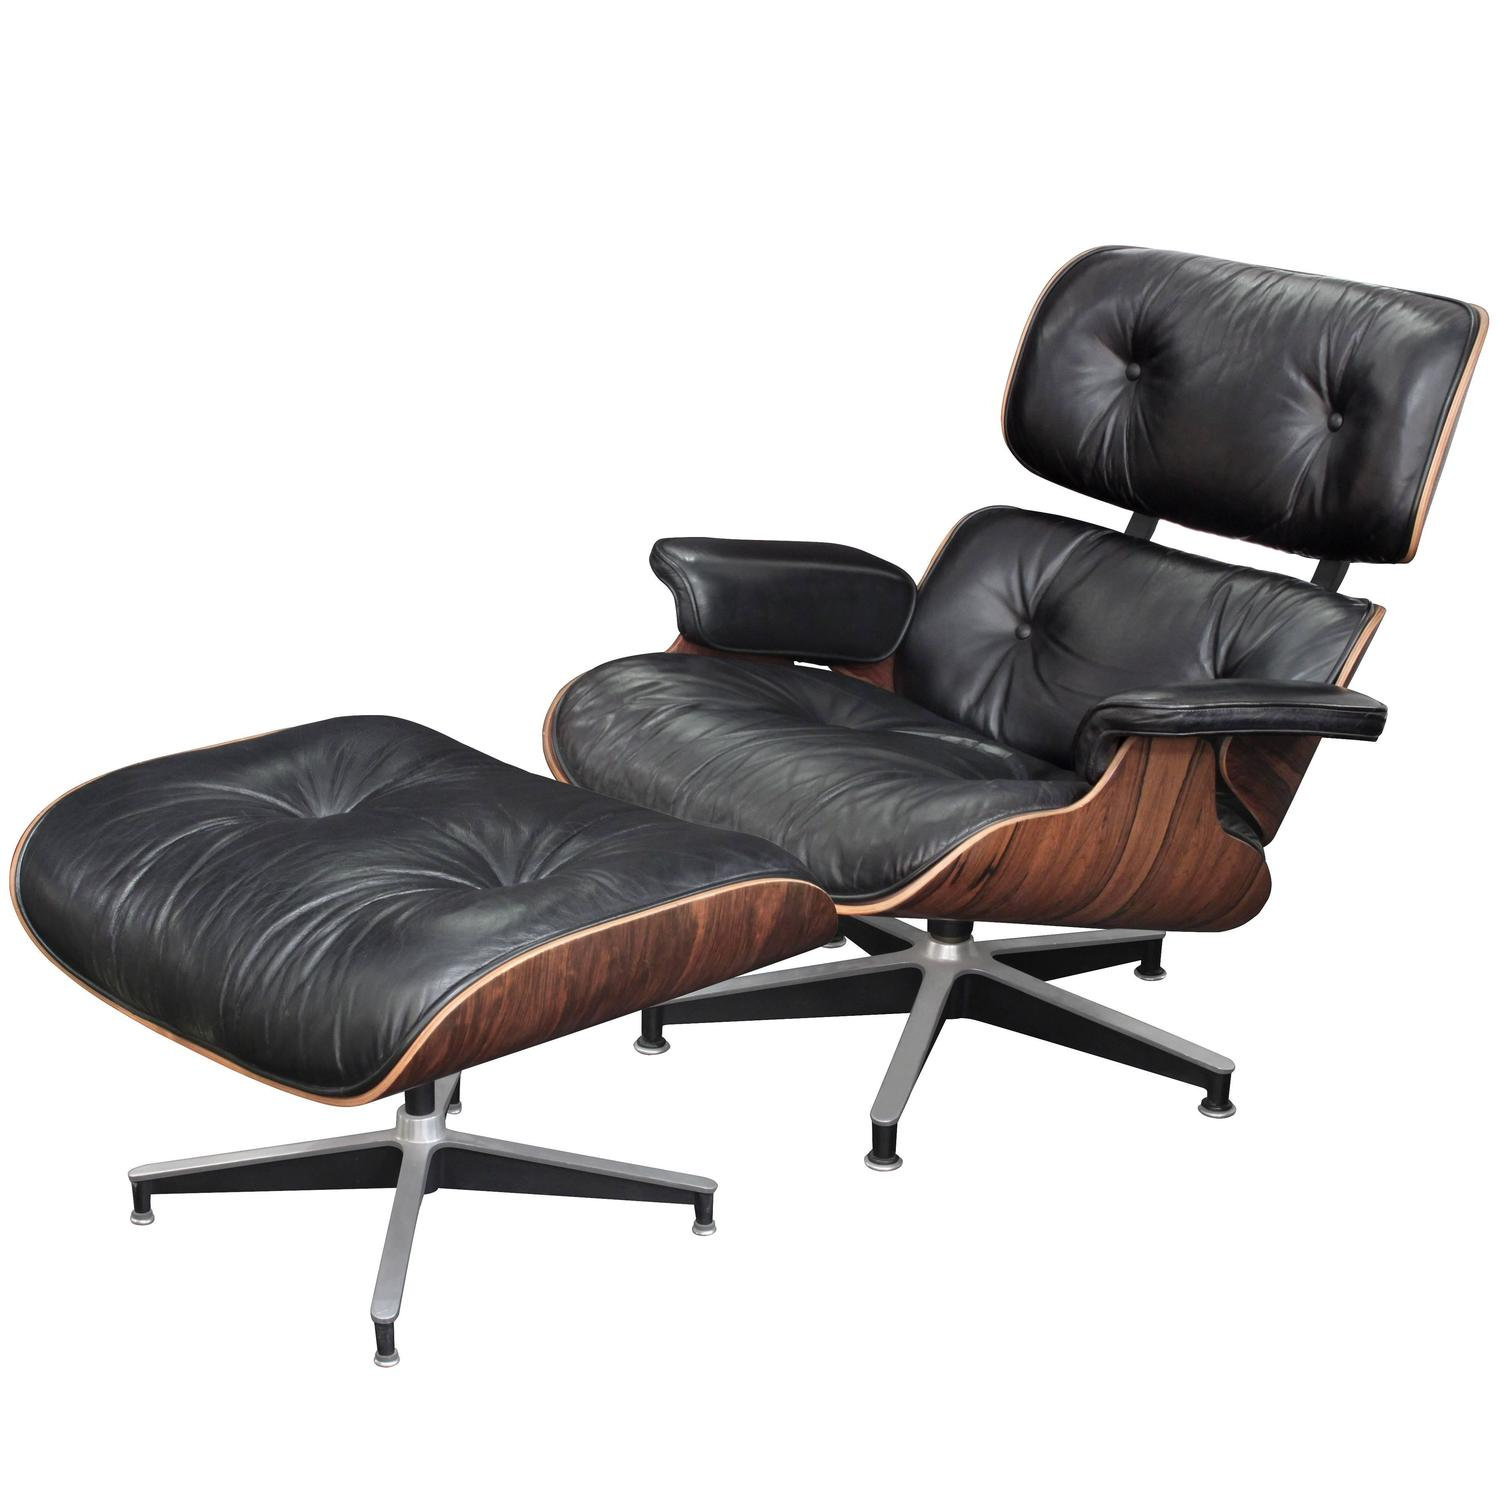 Iconic lounge chair and ottoman by charles and ray eames for Charles eames lounge chair nachbildung